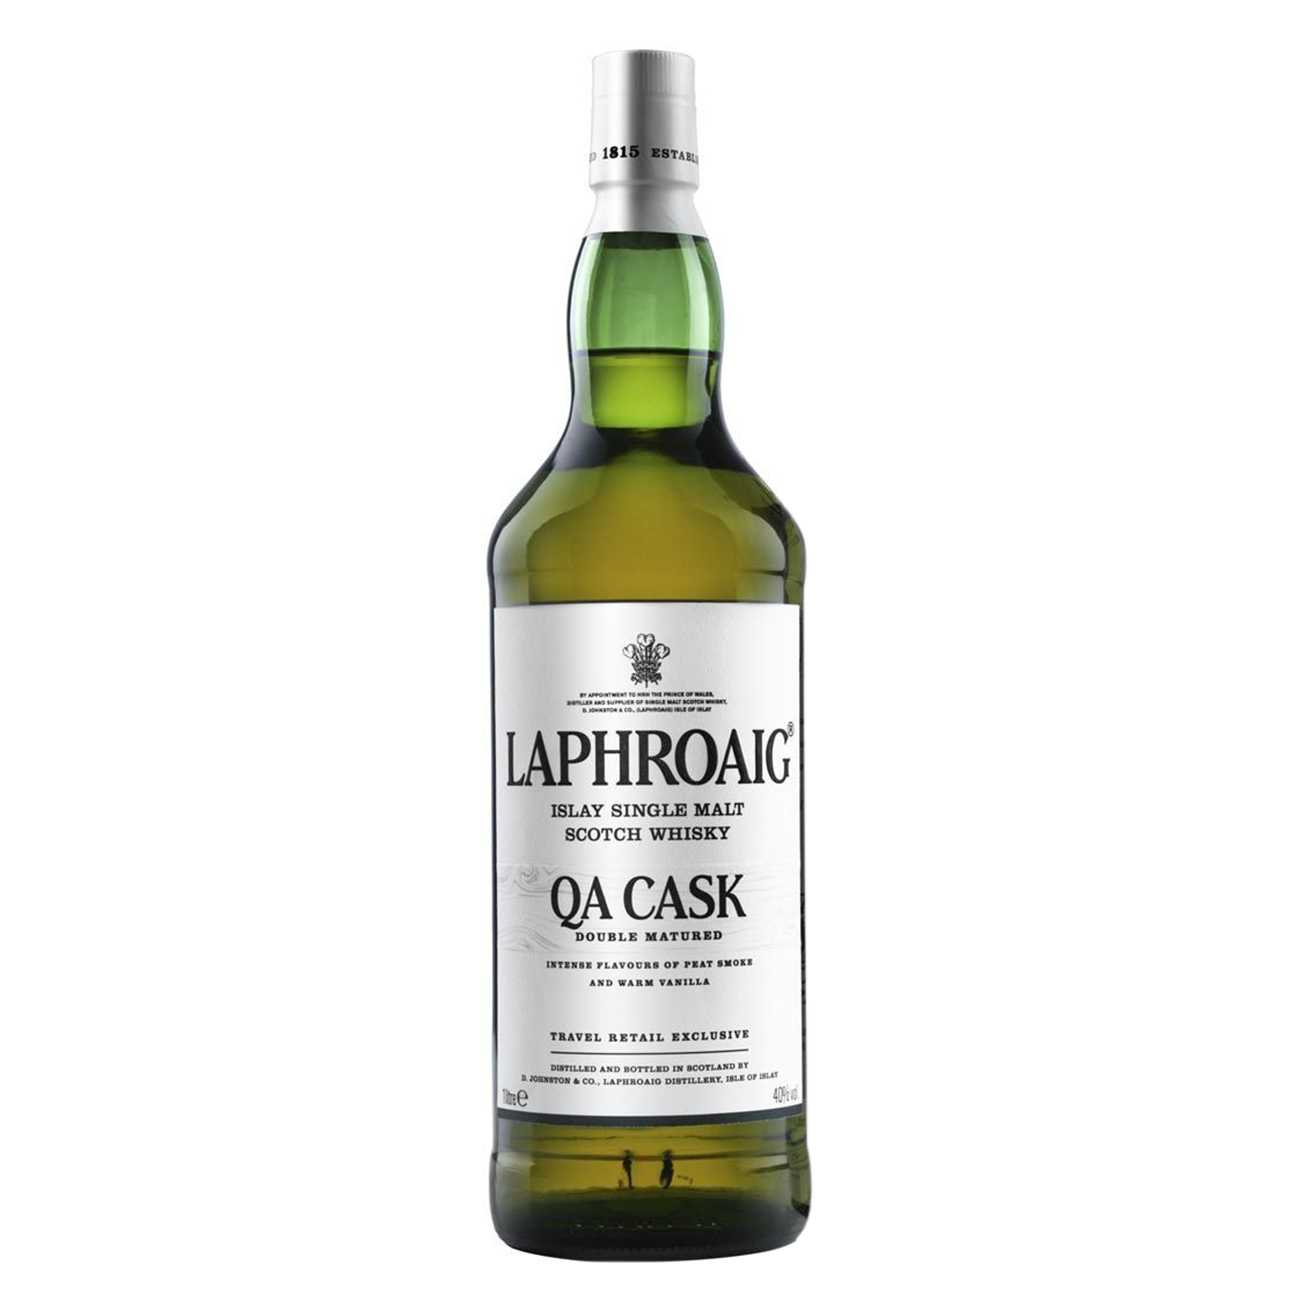 Whisky scotian, QA CASK 1000 ML, Laphroaig